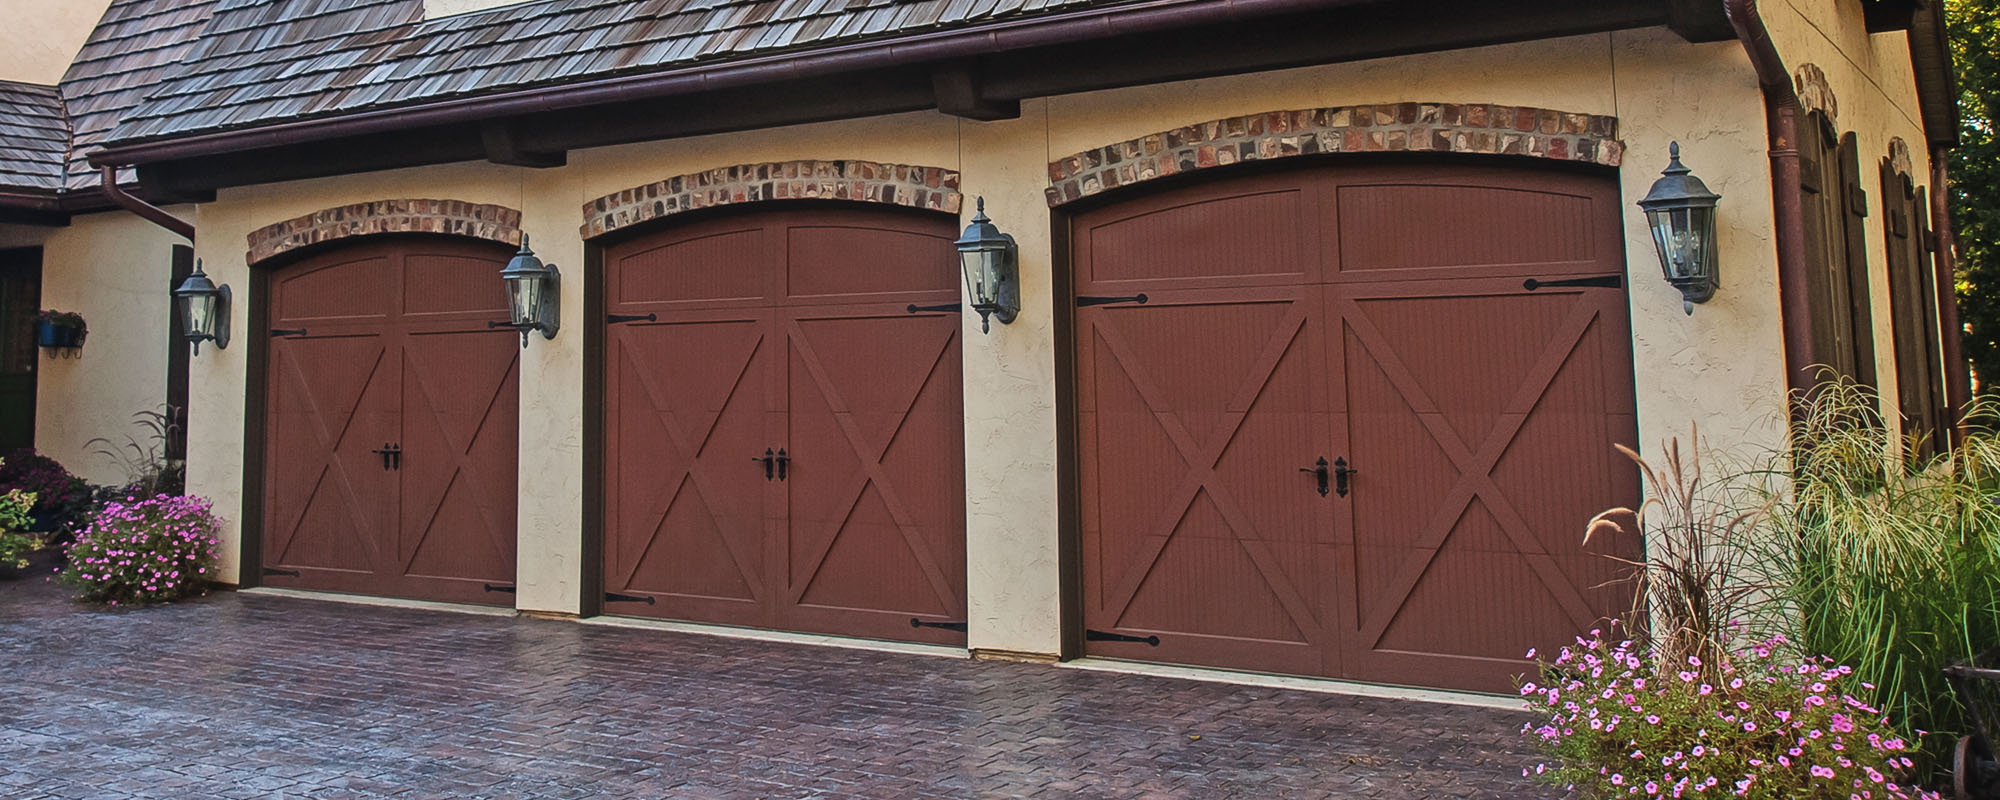 queen creek garage az doors sales banner repair door adams